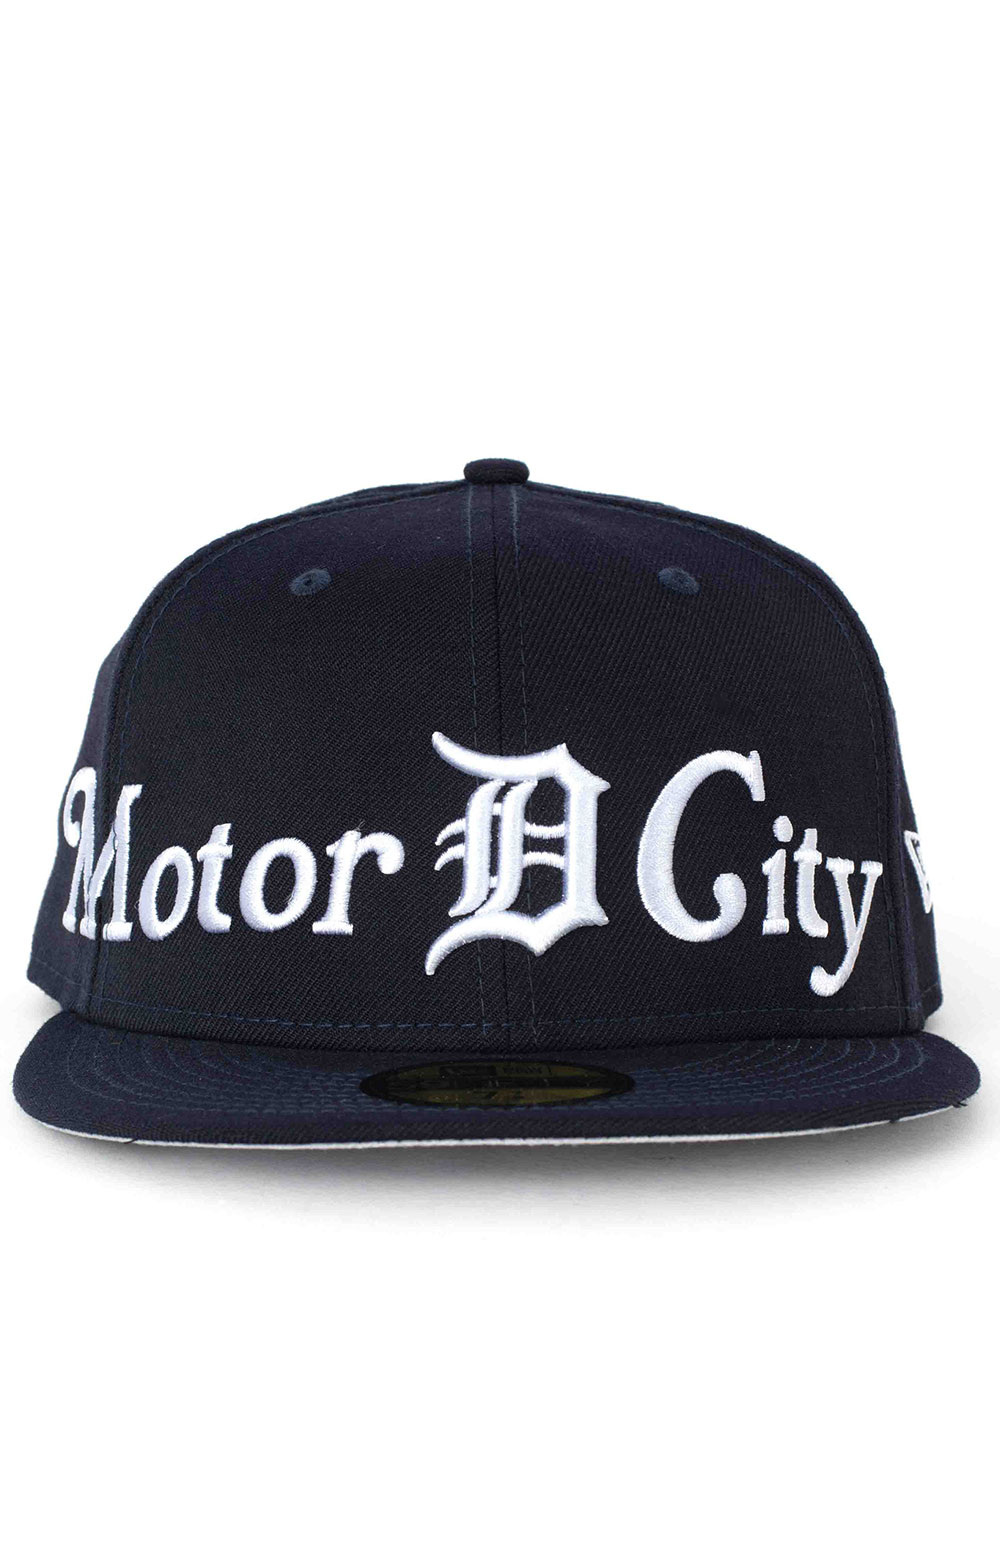 Detroit Tigers City Nicknames 59Fifty Fitted Hat - Navy 2